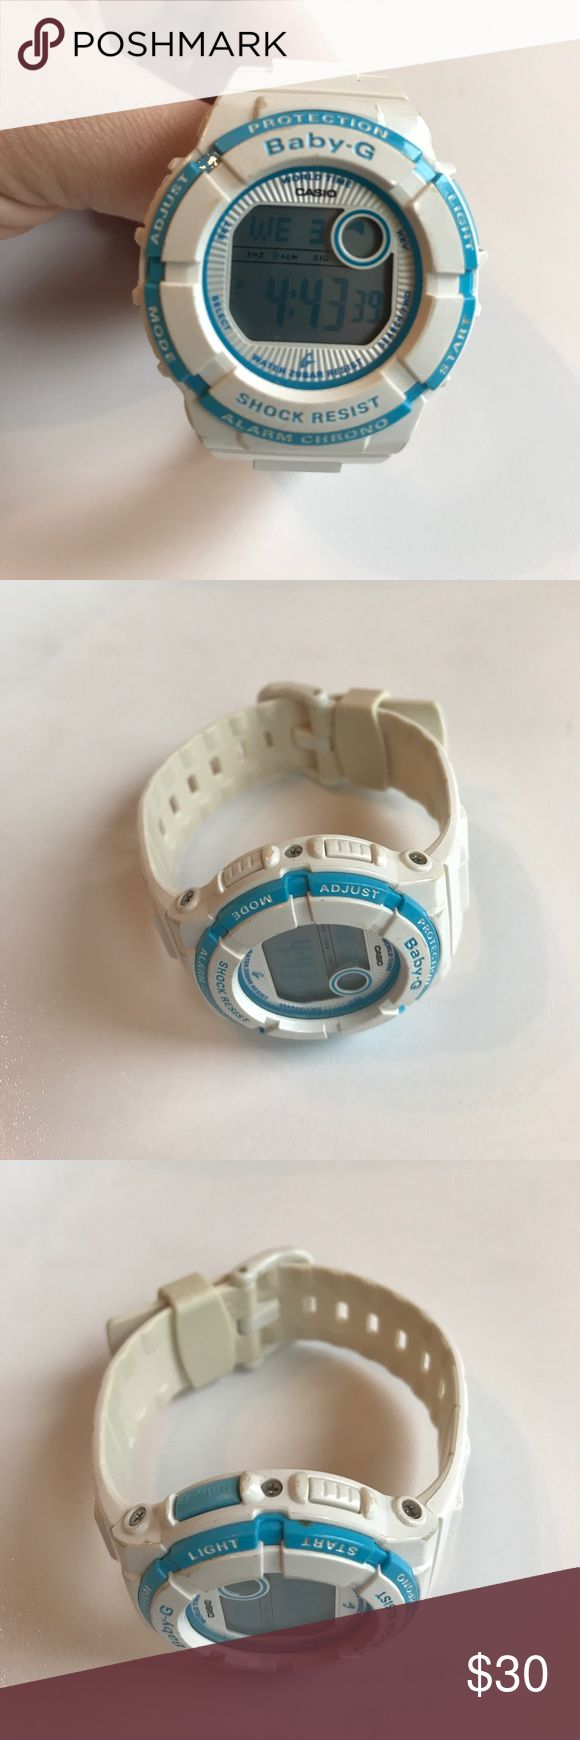 White Women's Baby-G G Shock Watch No scratches on face. Usual wear on band. Casio Accessories Watches